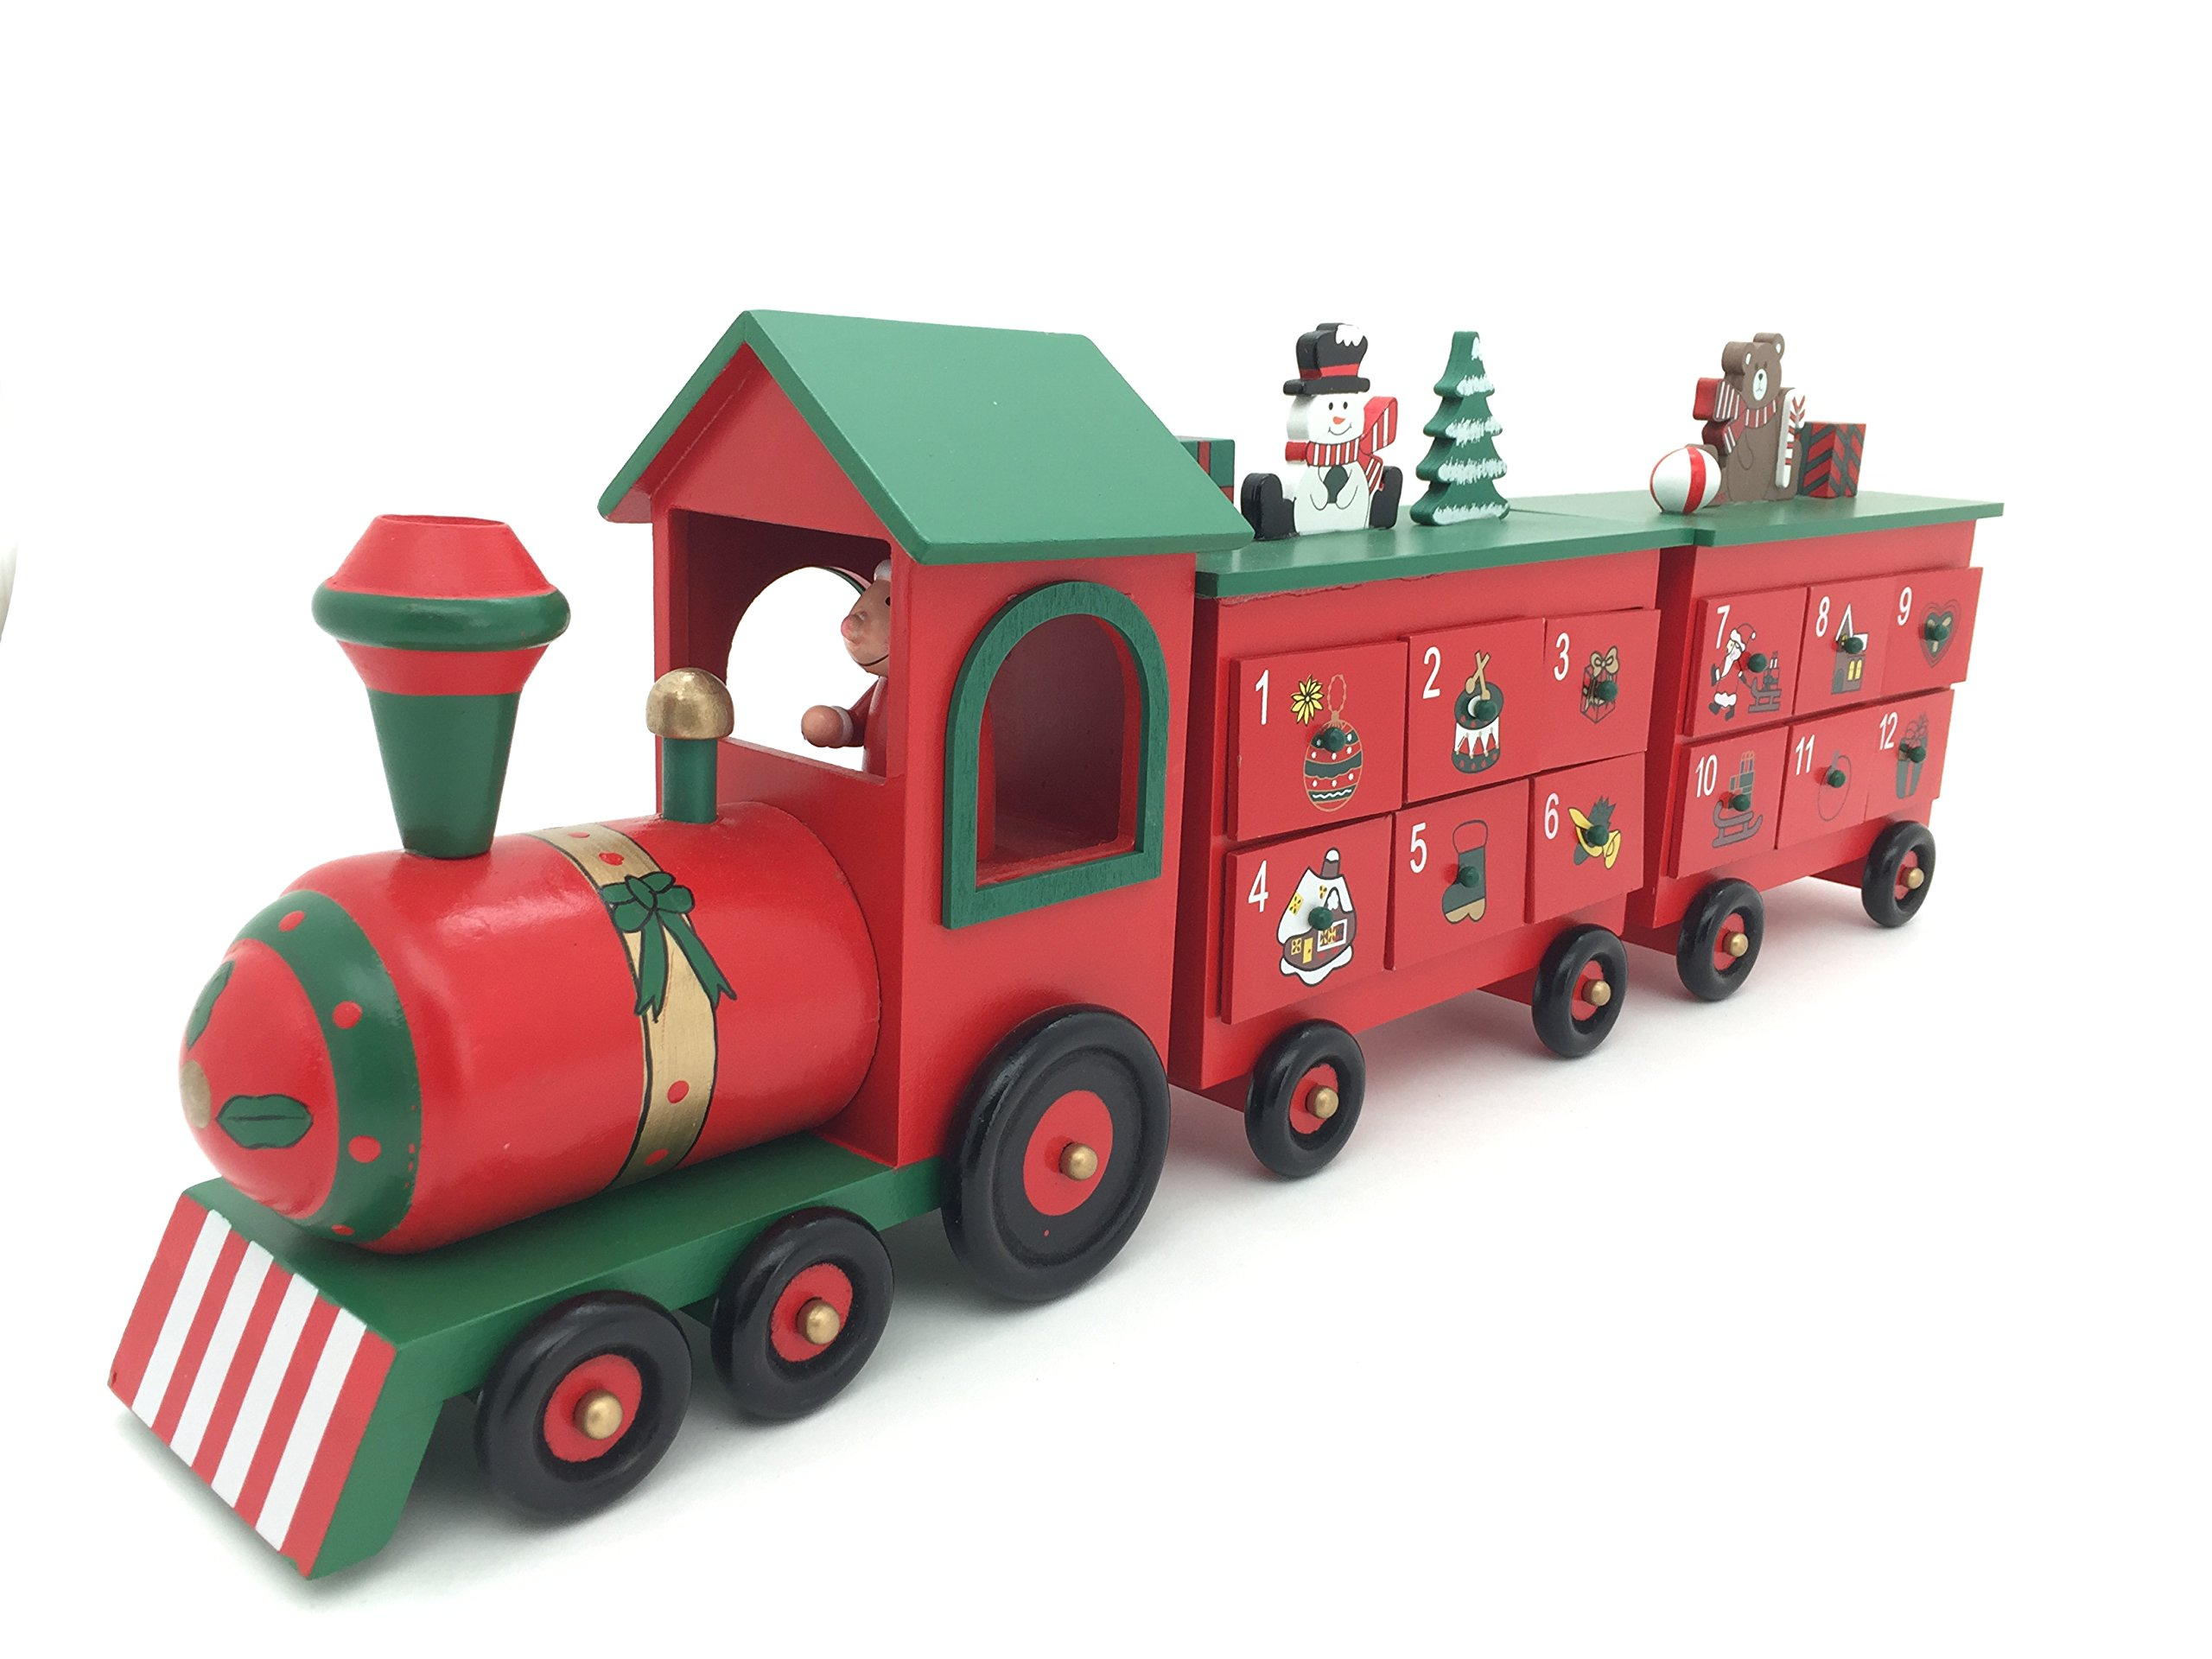 24 Inch Length Wood Advent Calendar Train for Christmas Decoration with 24 Drawers